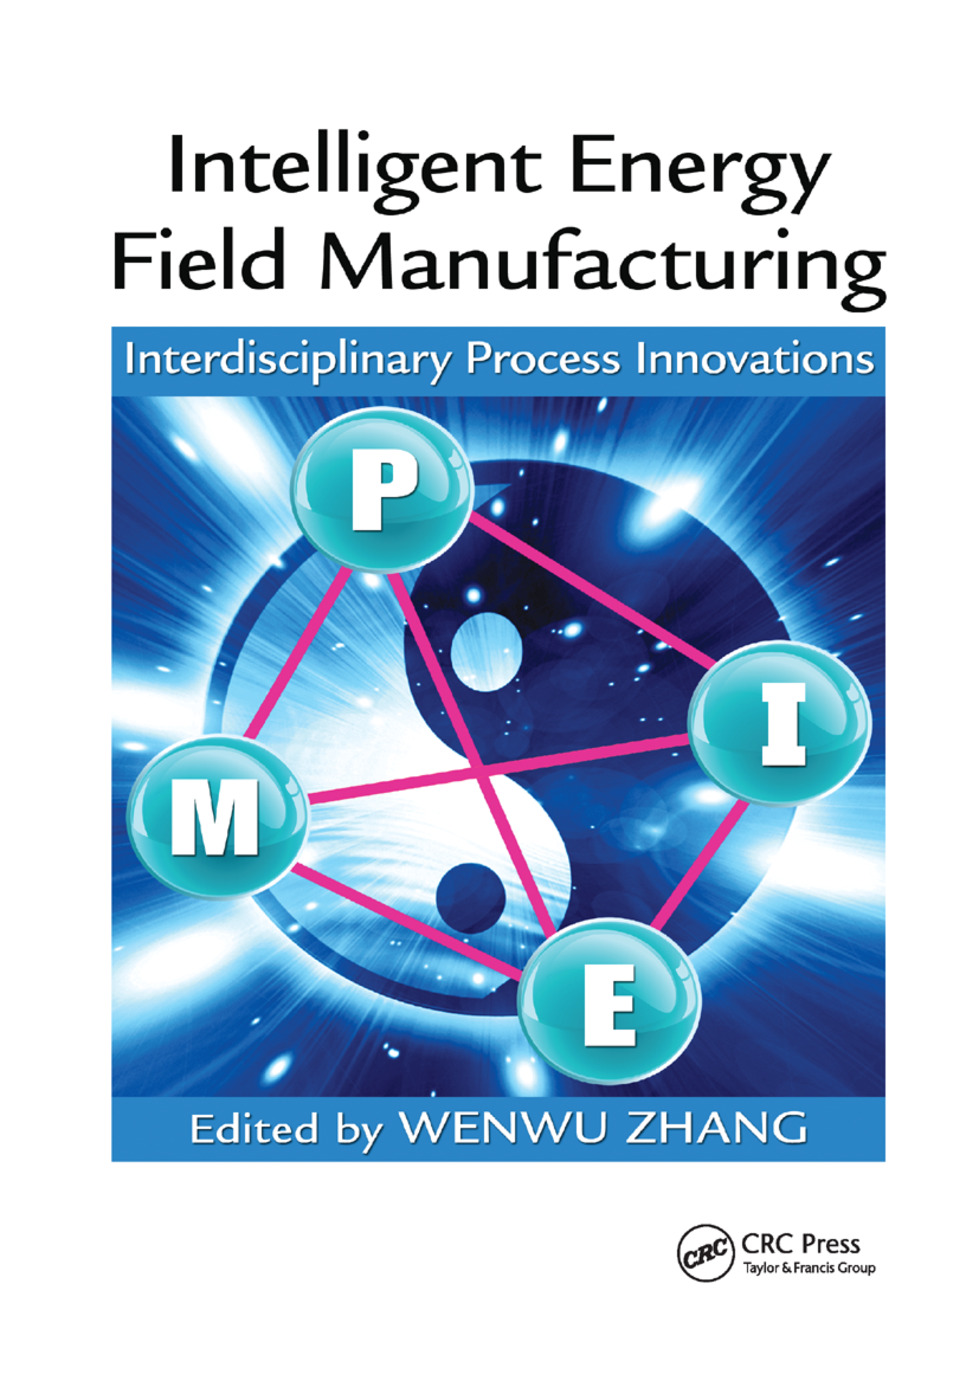 Intelligent Energy Field Manufacturing